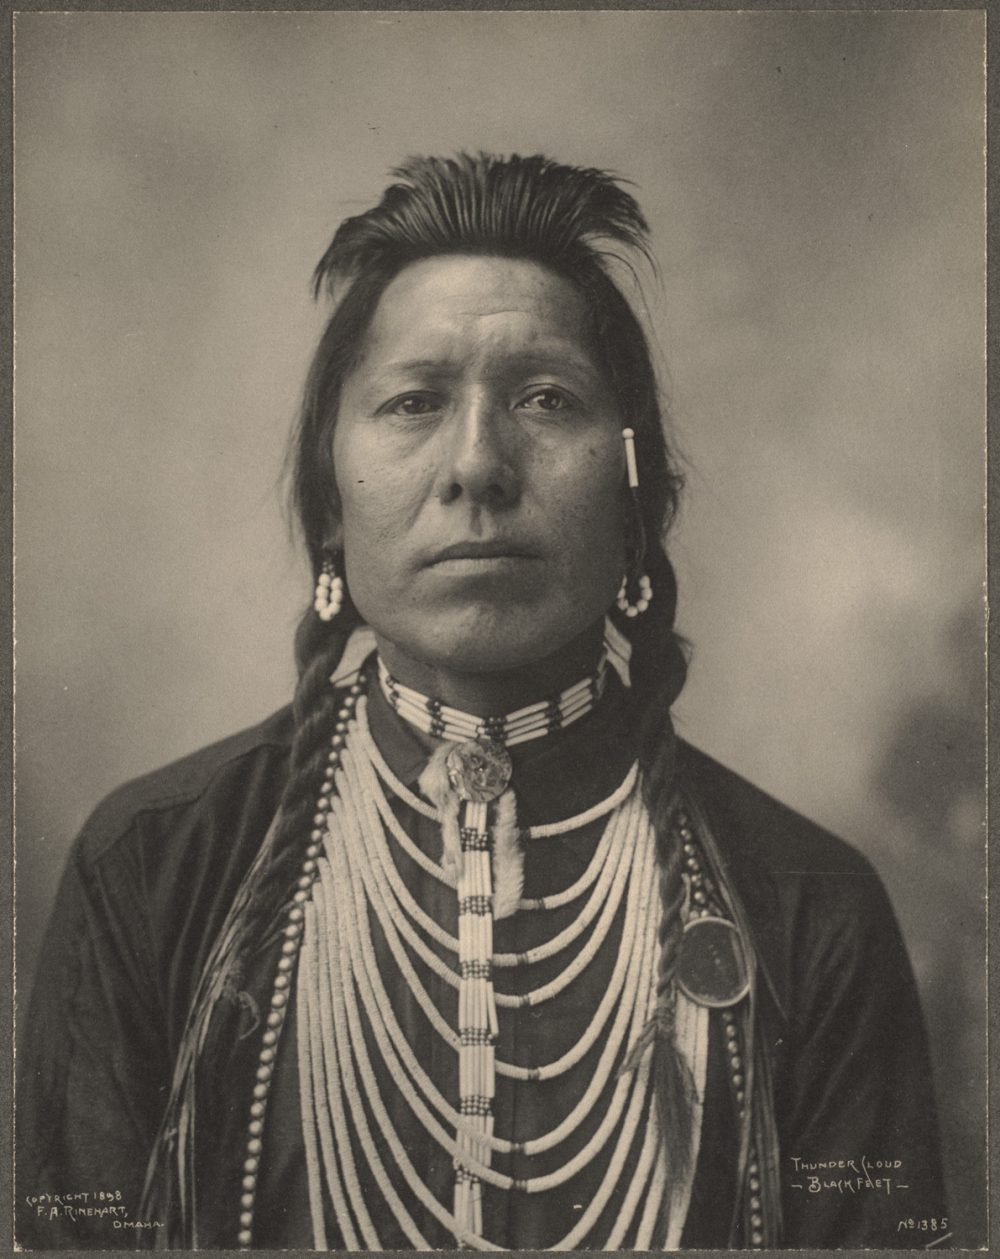 An archival photo from 1898 of Thunder Cloud, Blackfeet, an Algonquian Native American. (Boston Public Library/Flickr)